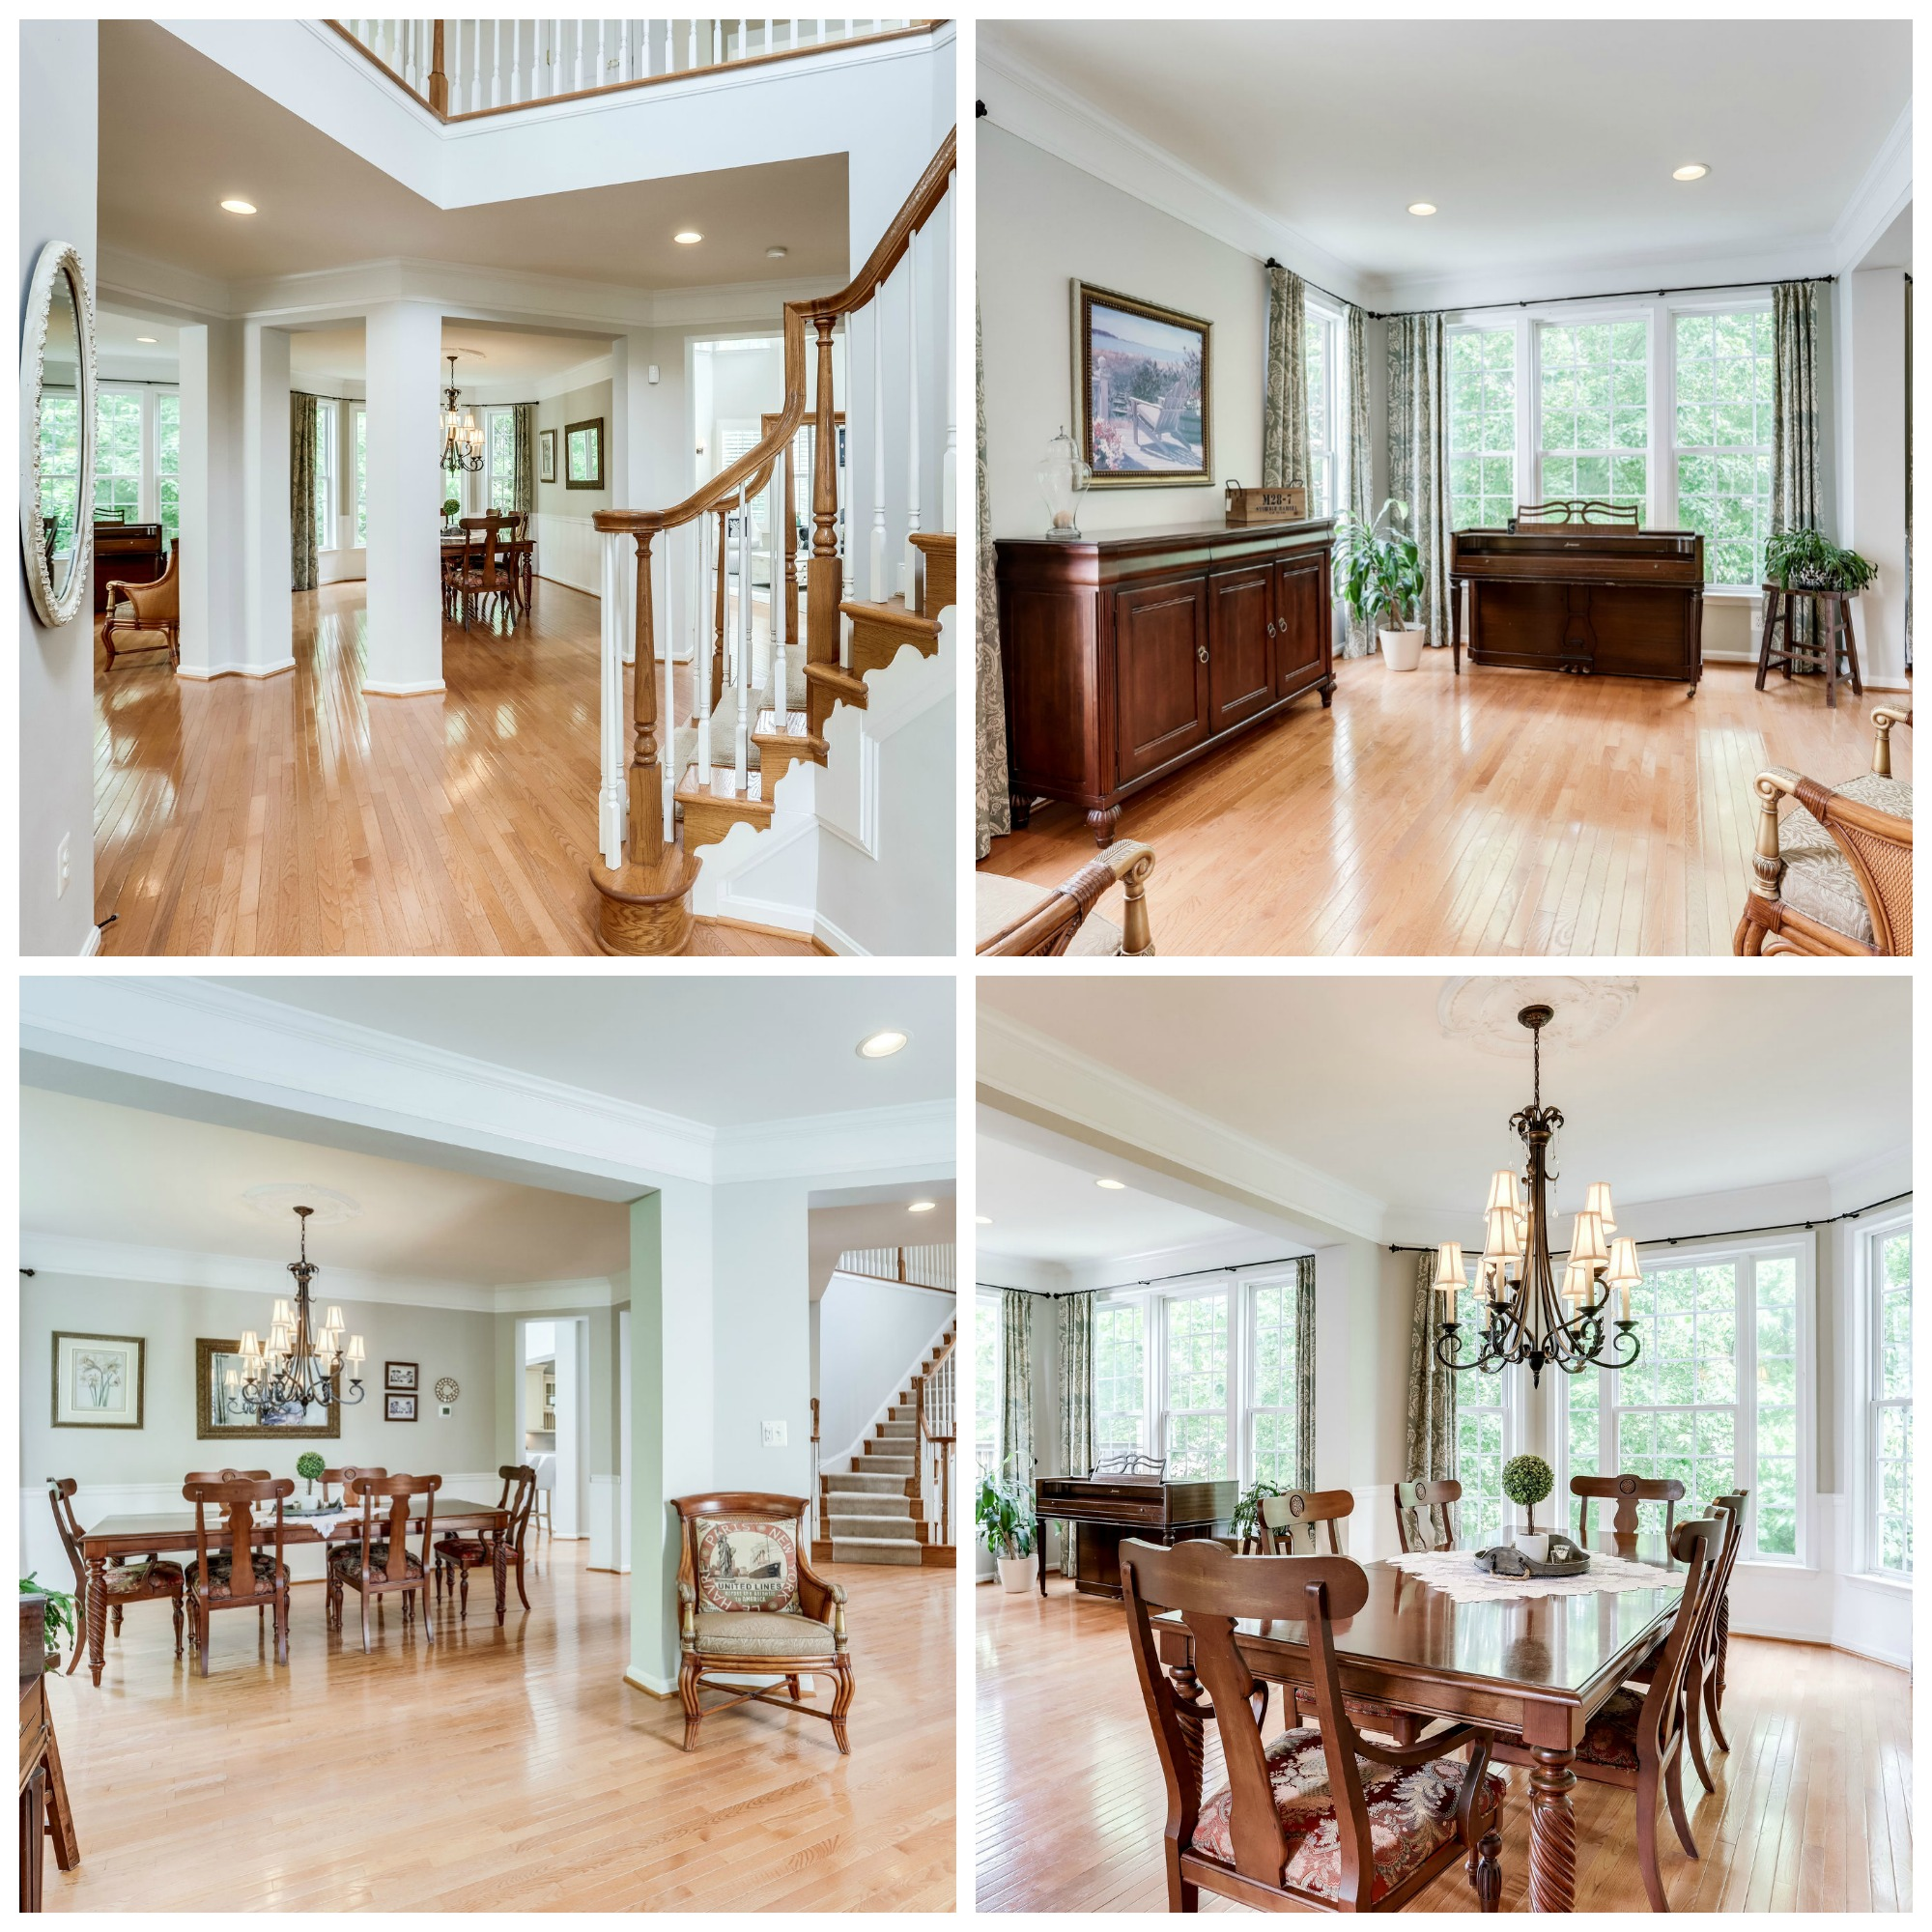 42914 Park Brooke Ct, Broadlands- Living and Dining Room